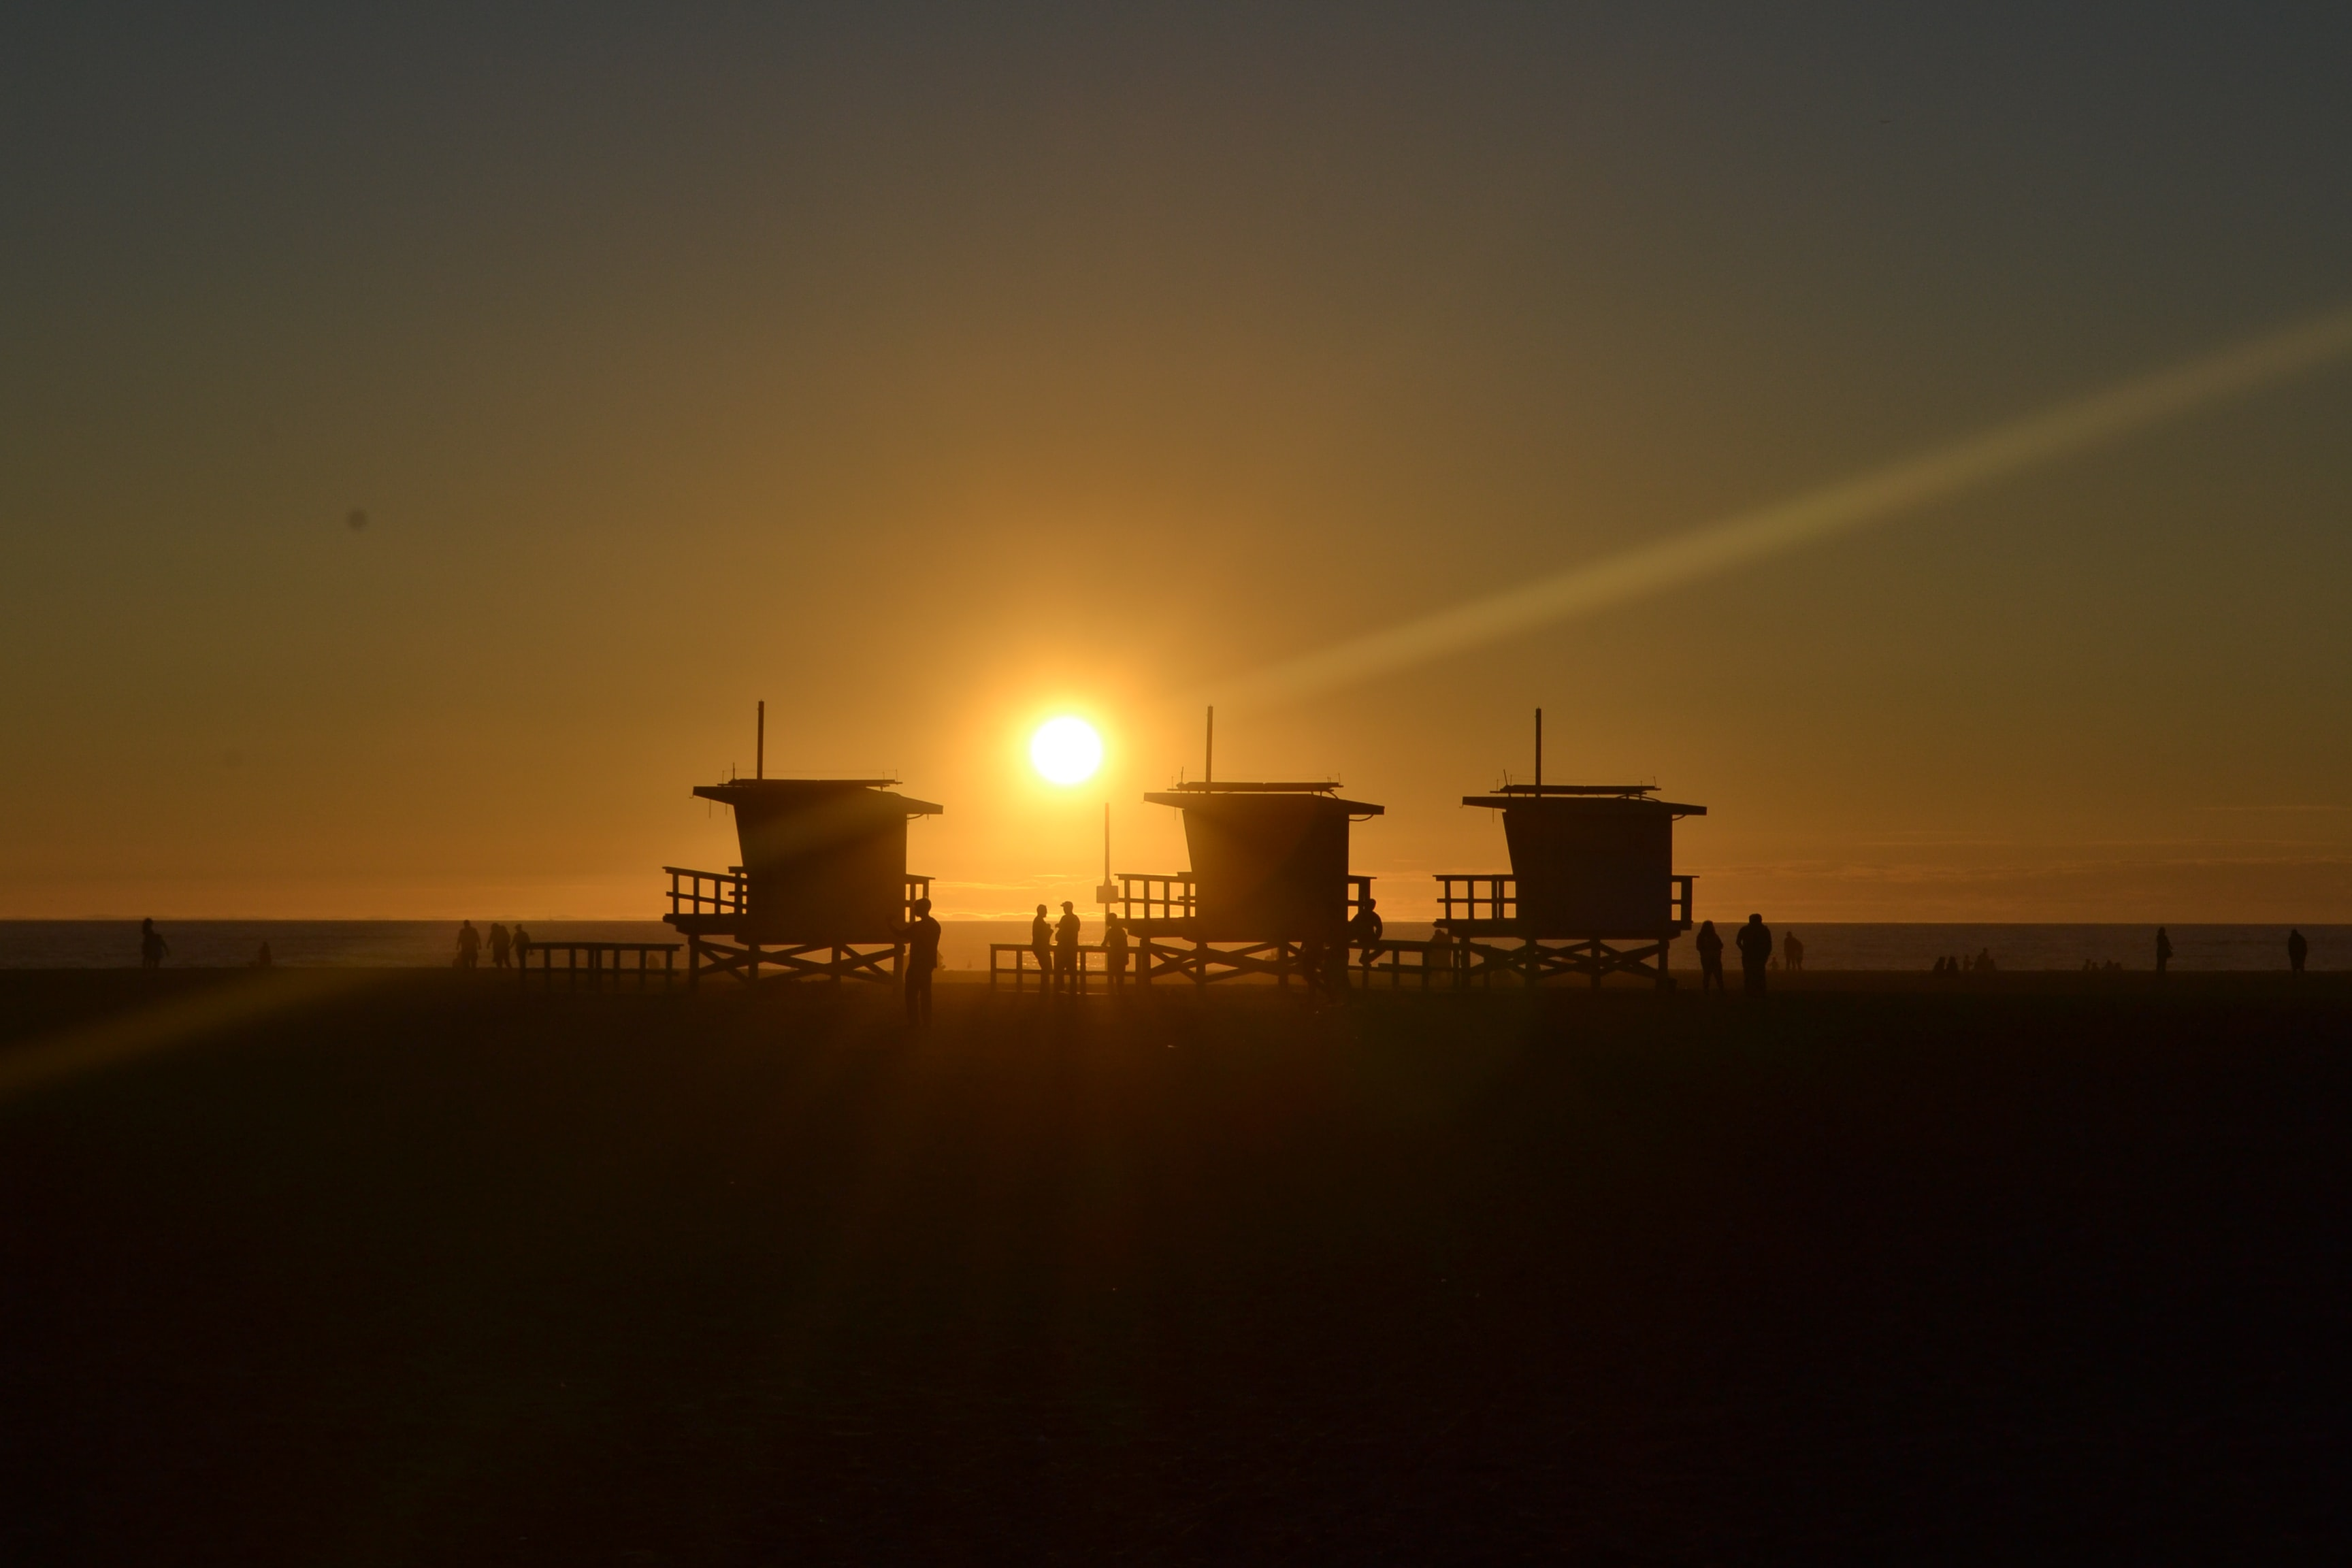 Sun setting behind the silhouettes of three lifeguard stations at Venice Beach